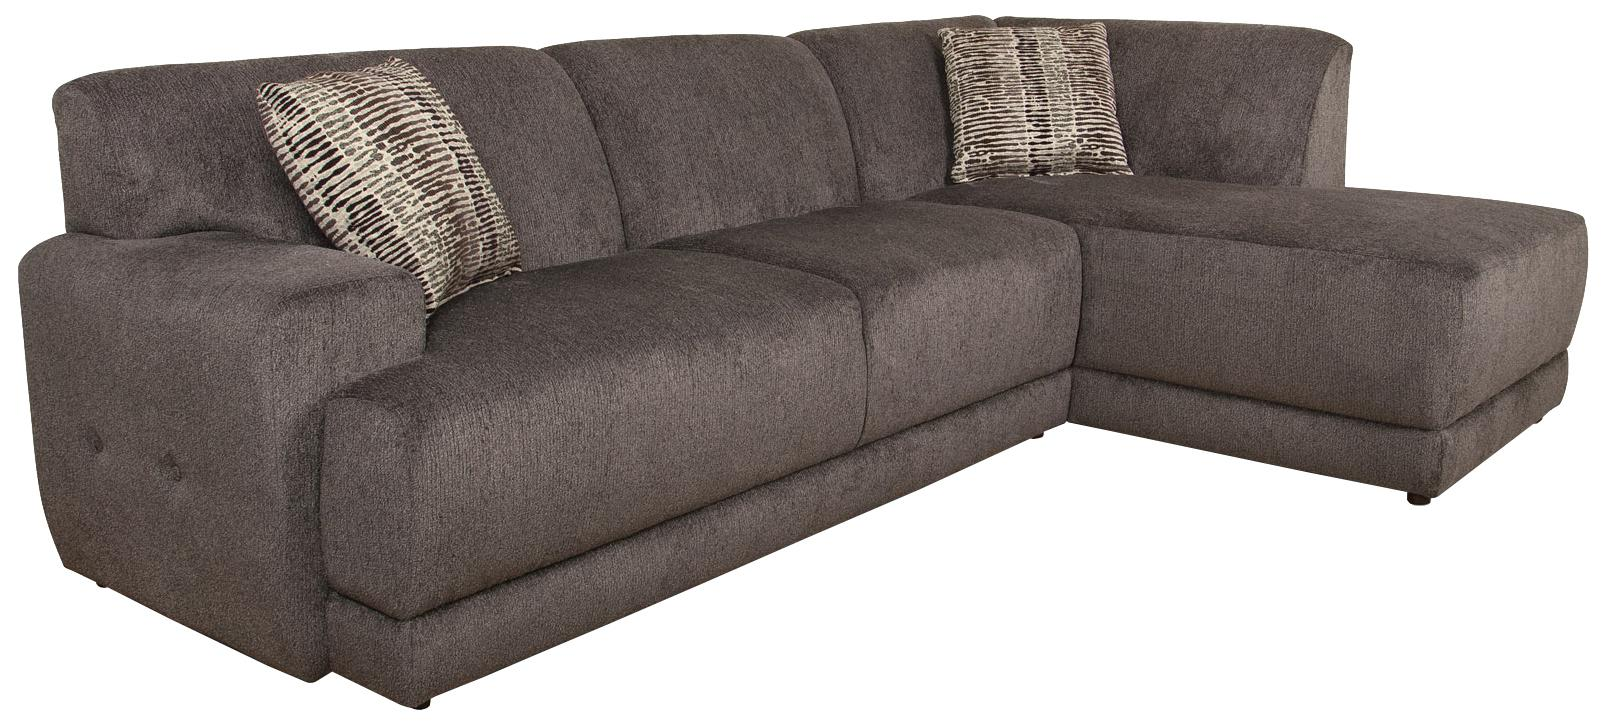 England Cole Contemporary Sectional Sofa With Right Facing Chaise Furniture Superstore